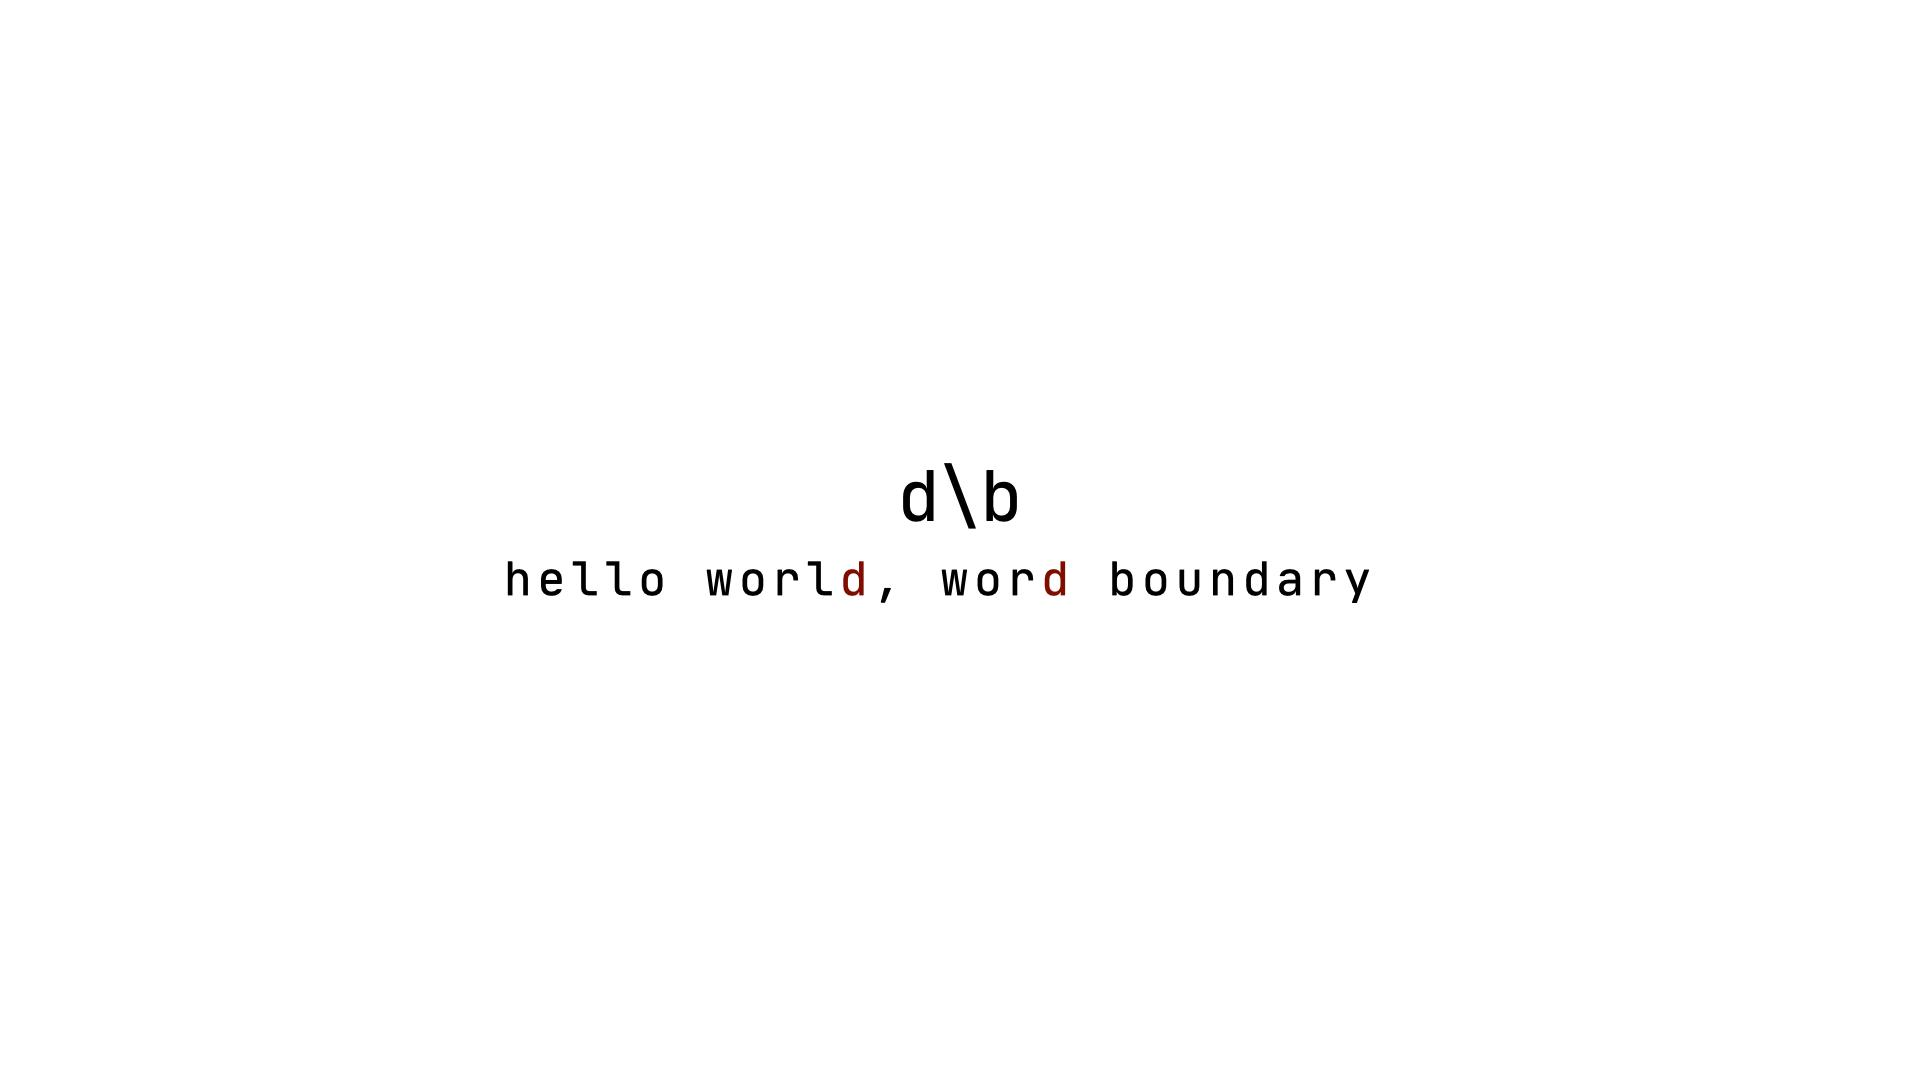 word boundary with character